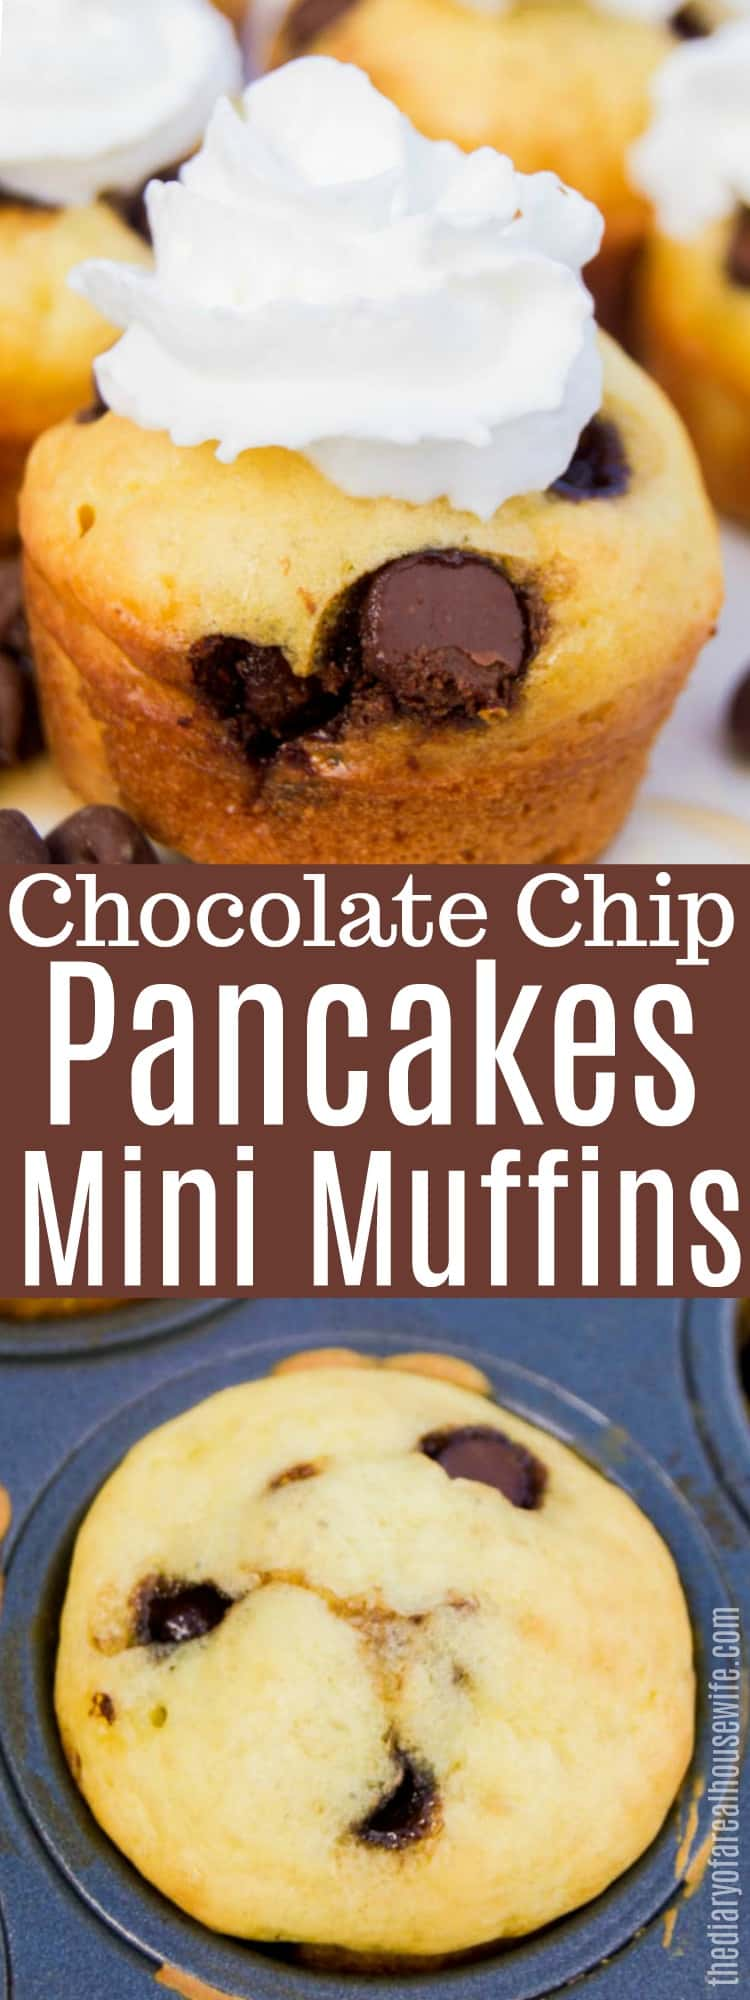 Chocolate Chip Pancakes Mini Muffins